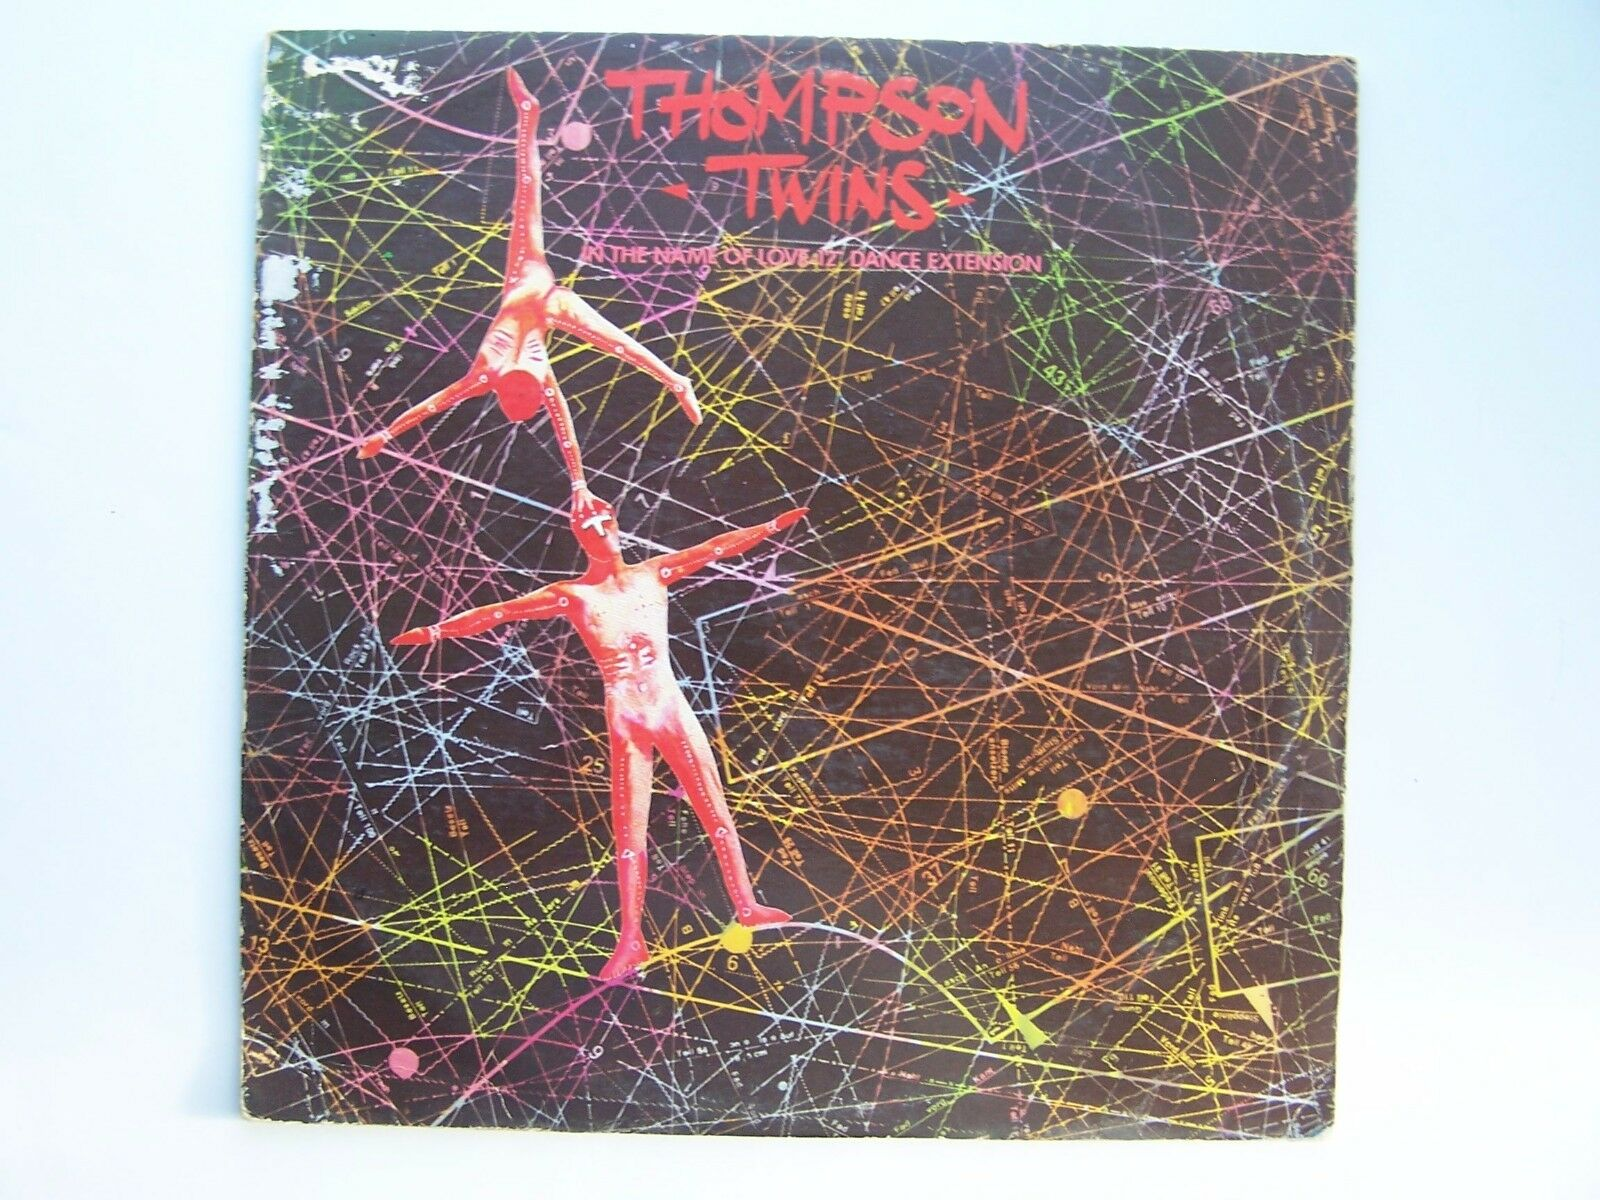 """Thompson Twins - In The Name Of Love (12"""" Dance Extensi"""